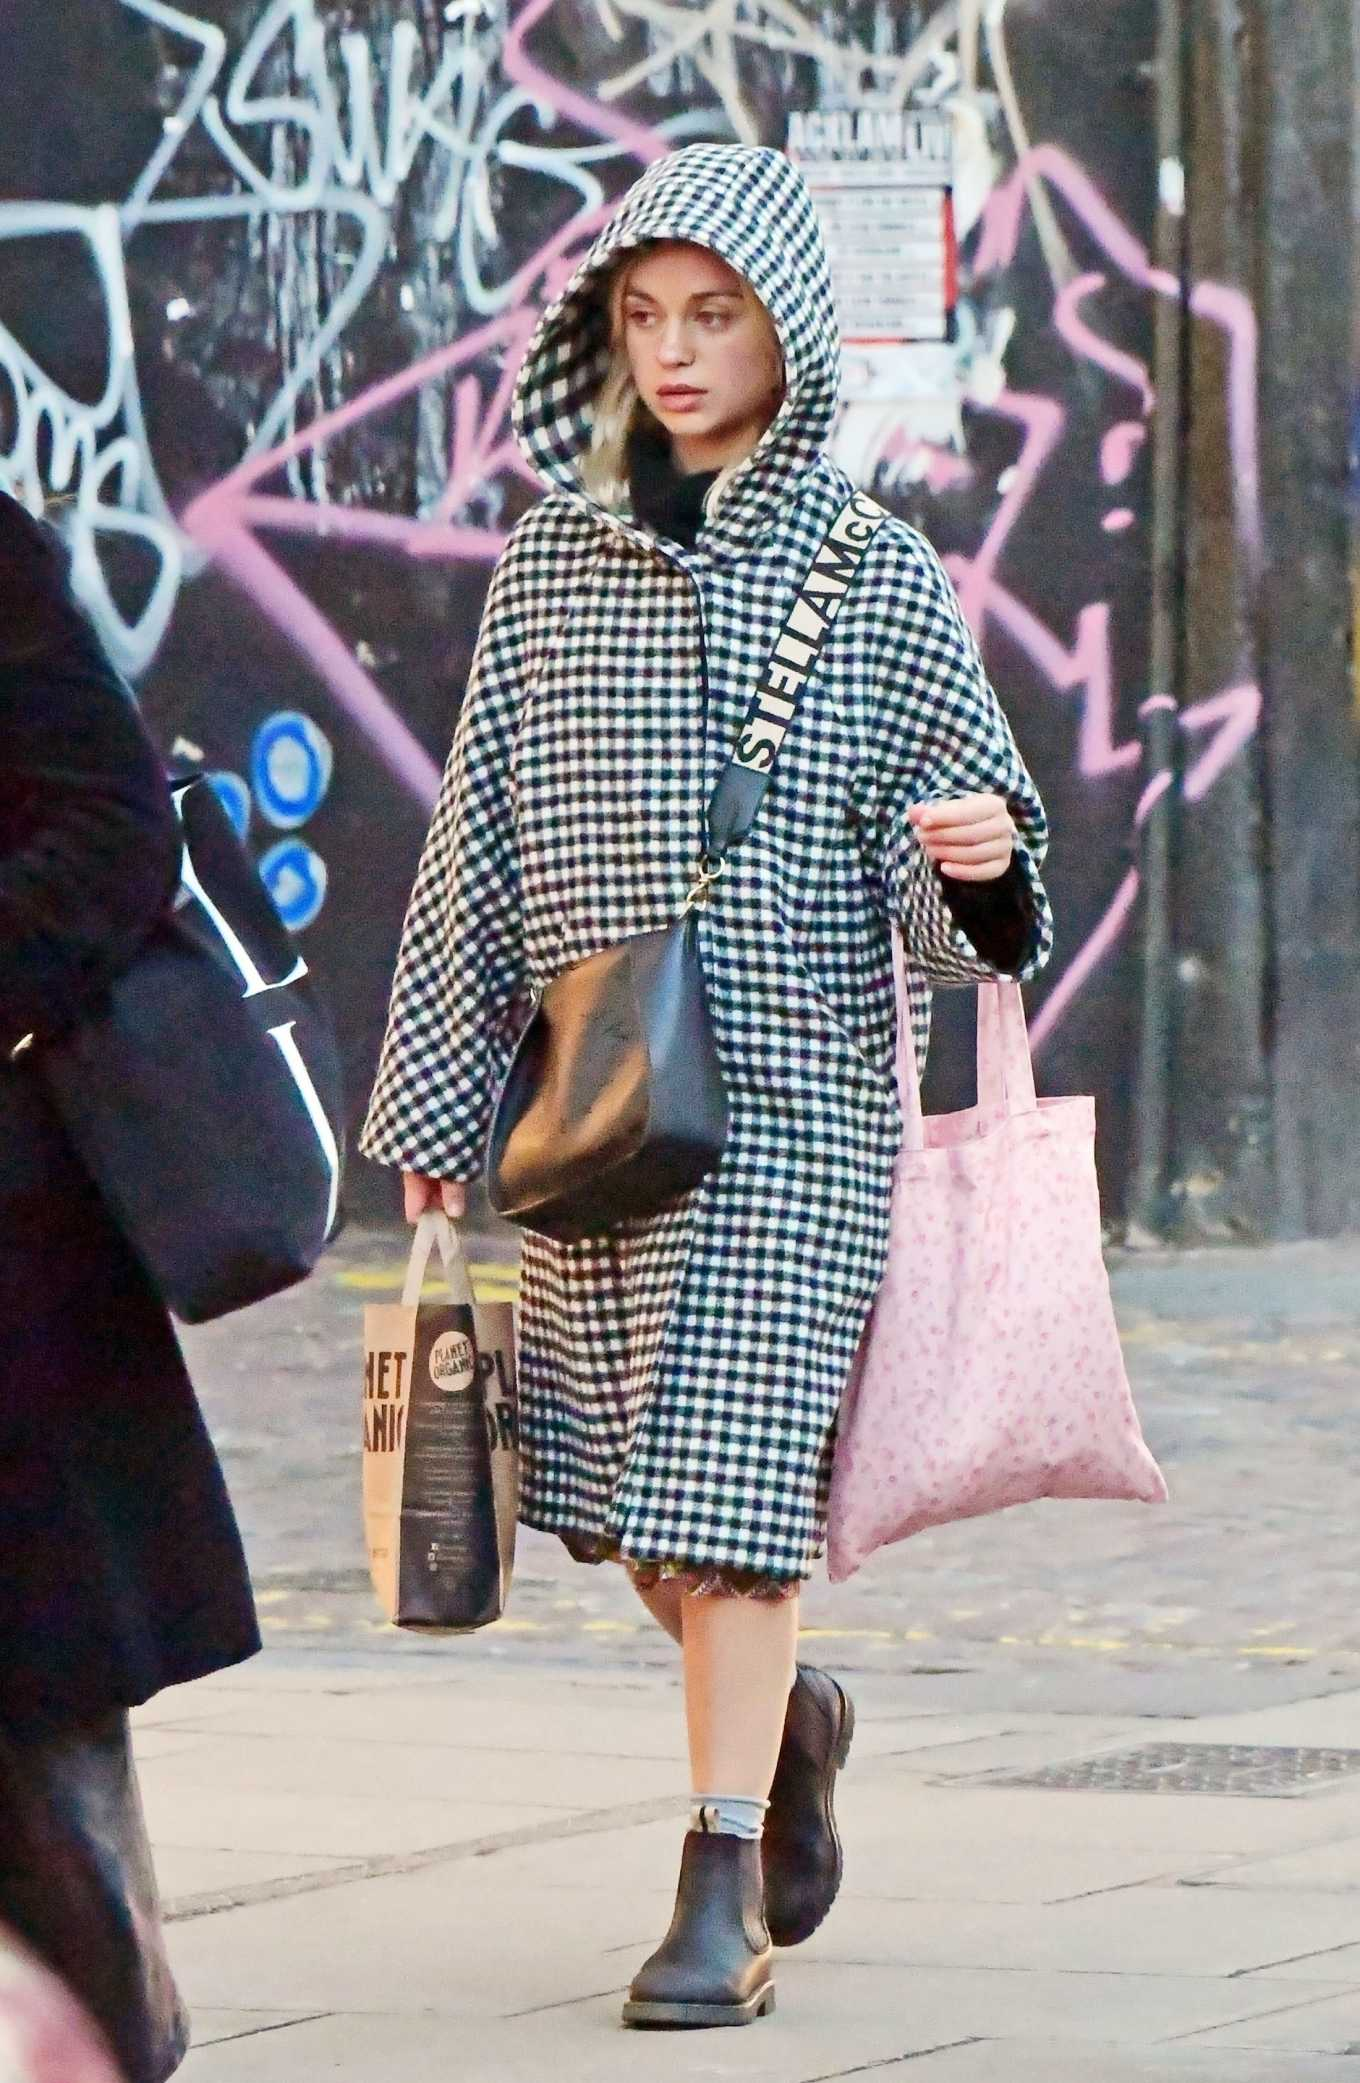 Amelia Windsor 2020 : Amelia Windsor – Looks stylis while out in the trendy area of Notting Hill-16